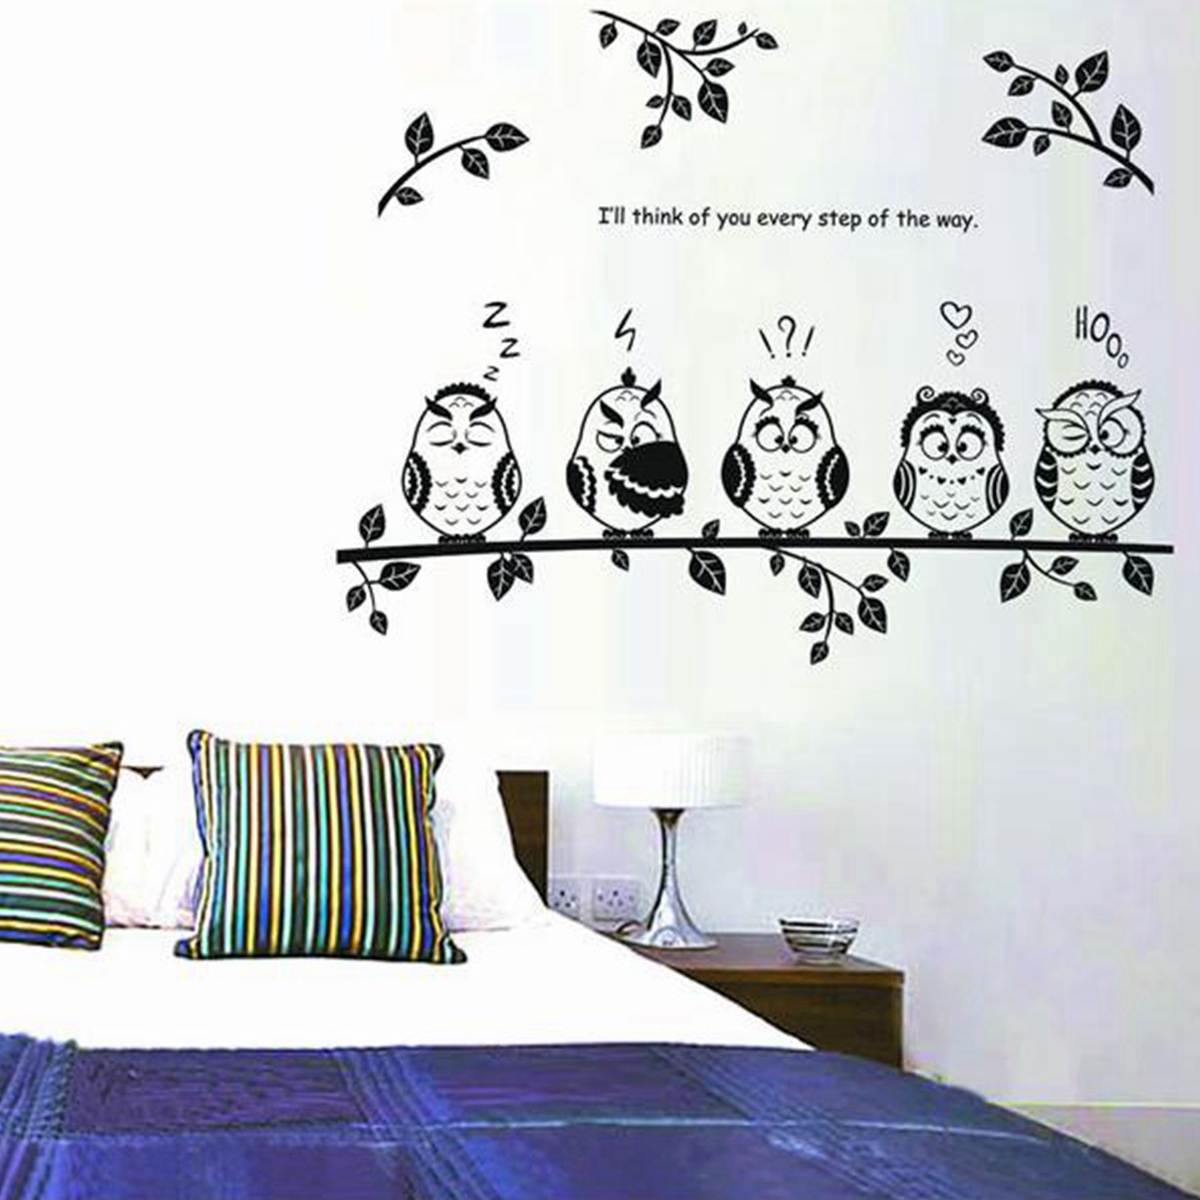 HOT WALL STICKERS Removable Decal Transfer Interior Home  Part 97